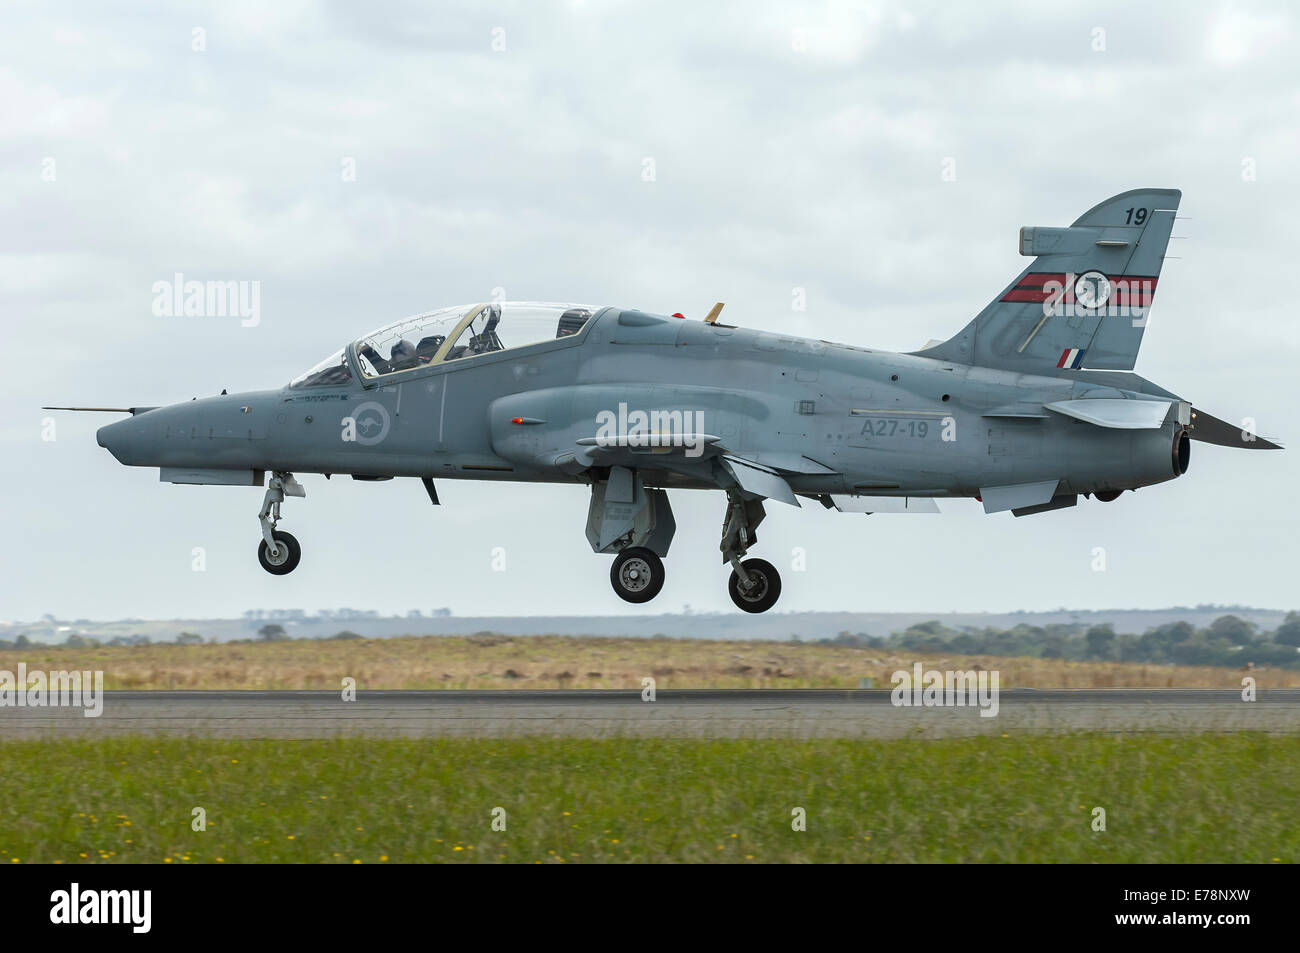 BAe Hawk 127 of the RAAF at Avalon Airport during the Australian Bicentennial Air Show - Stock Image